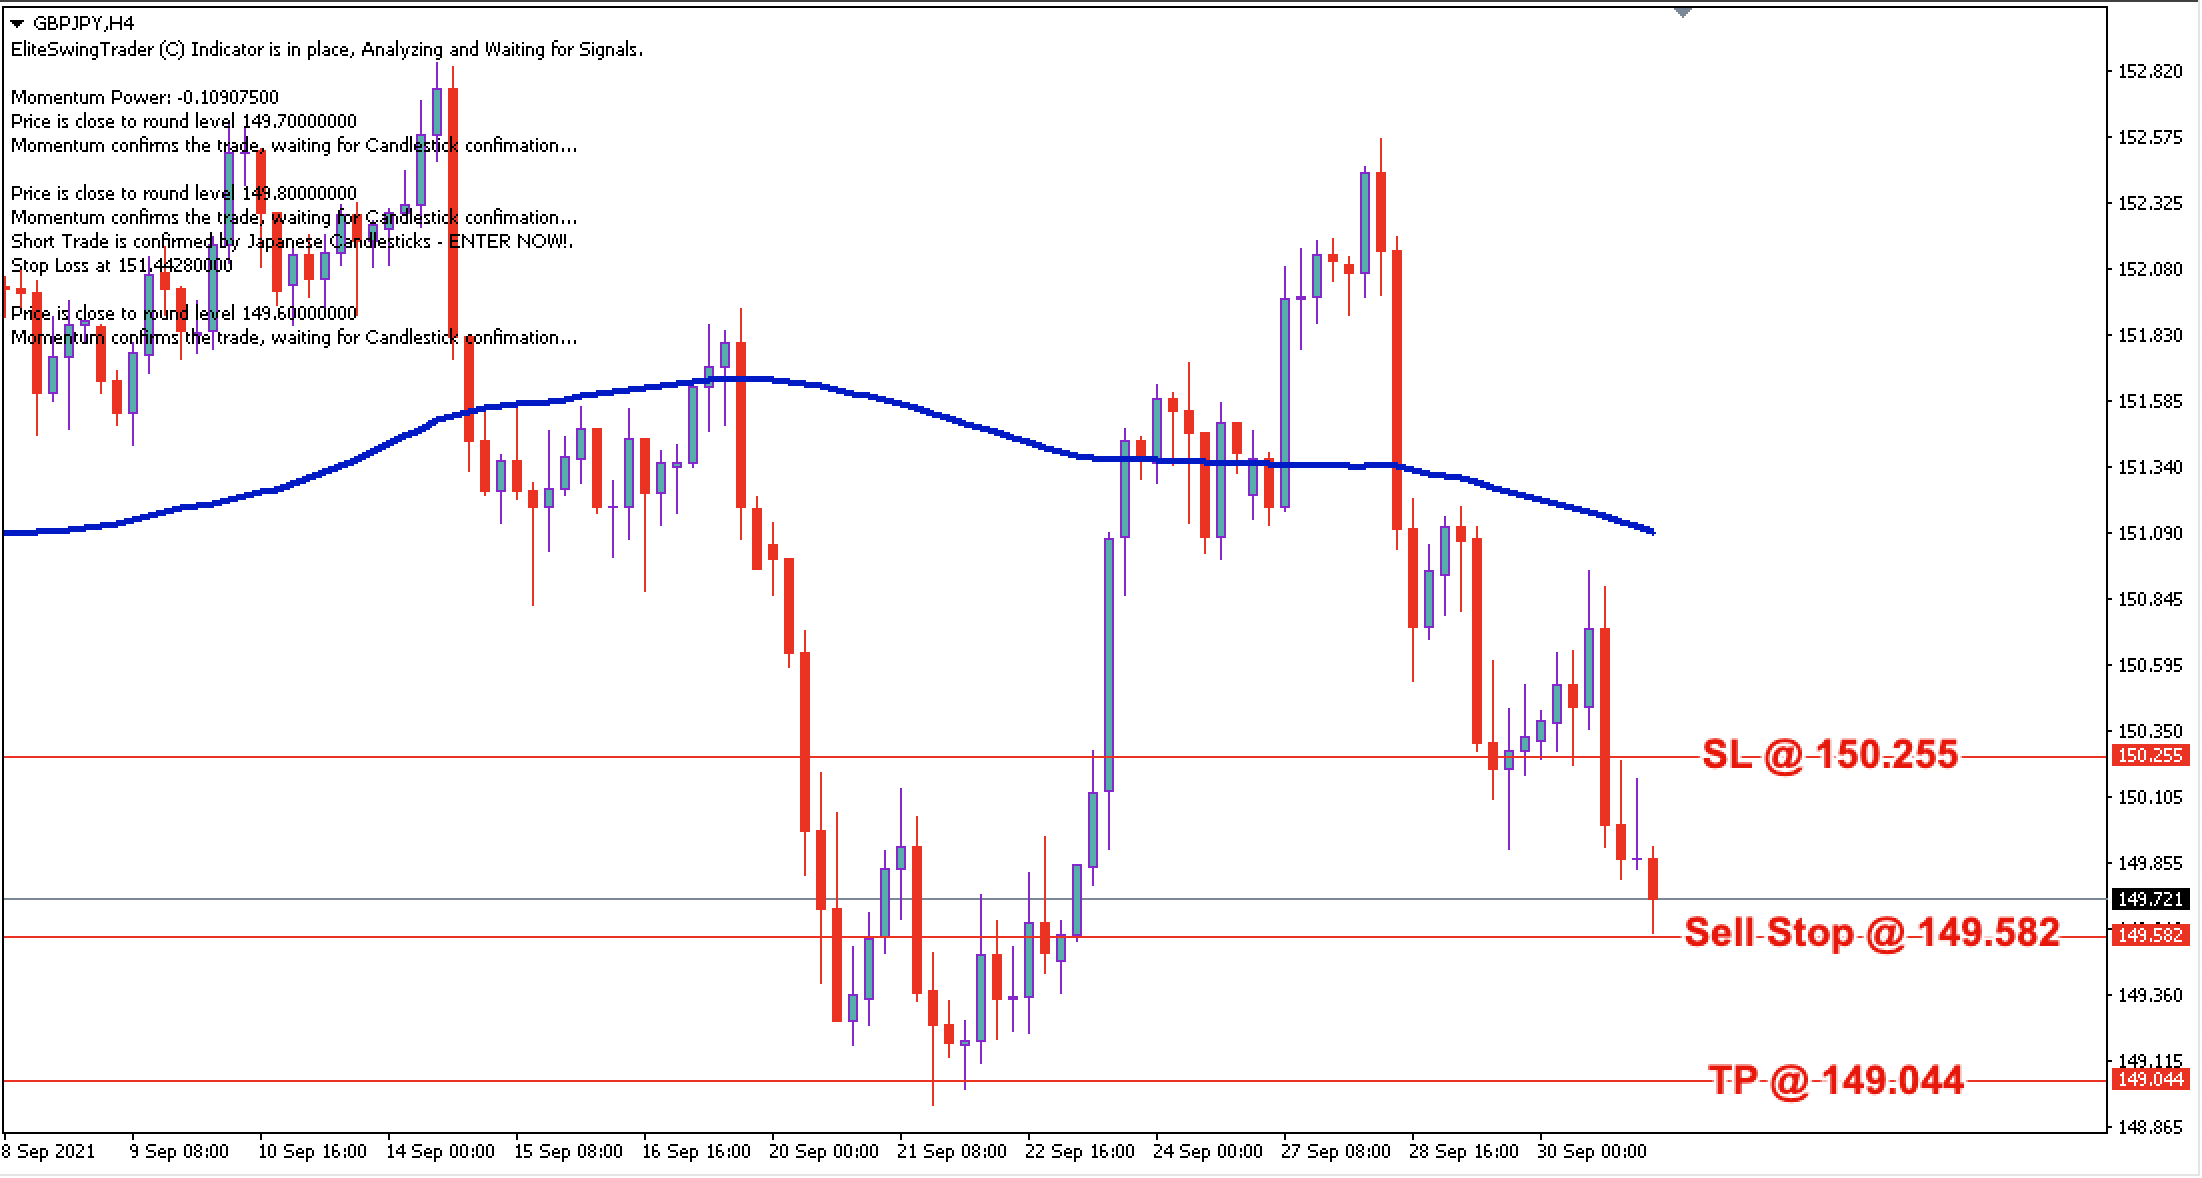 GBP/JPY Daily Price Forecast – 1st Oct 2021